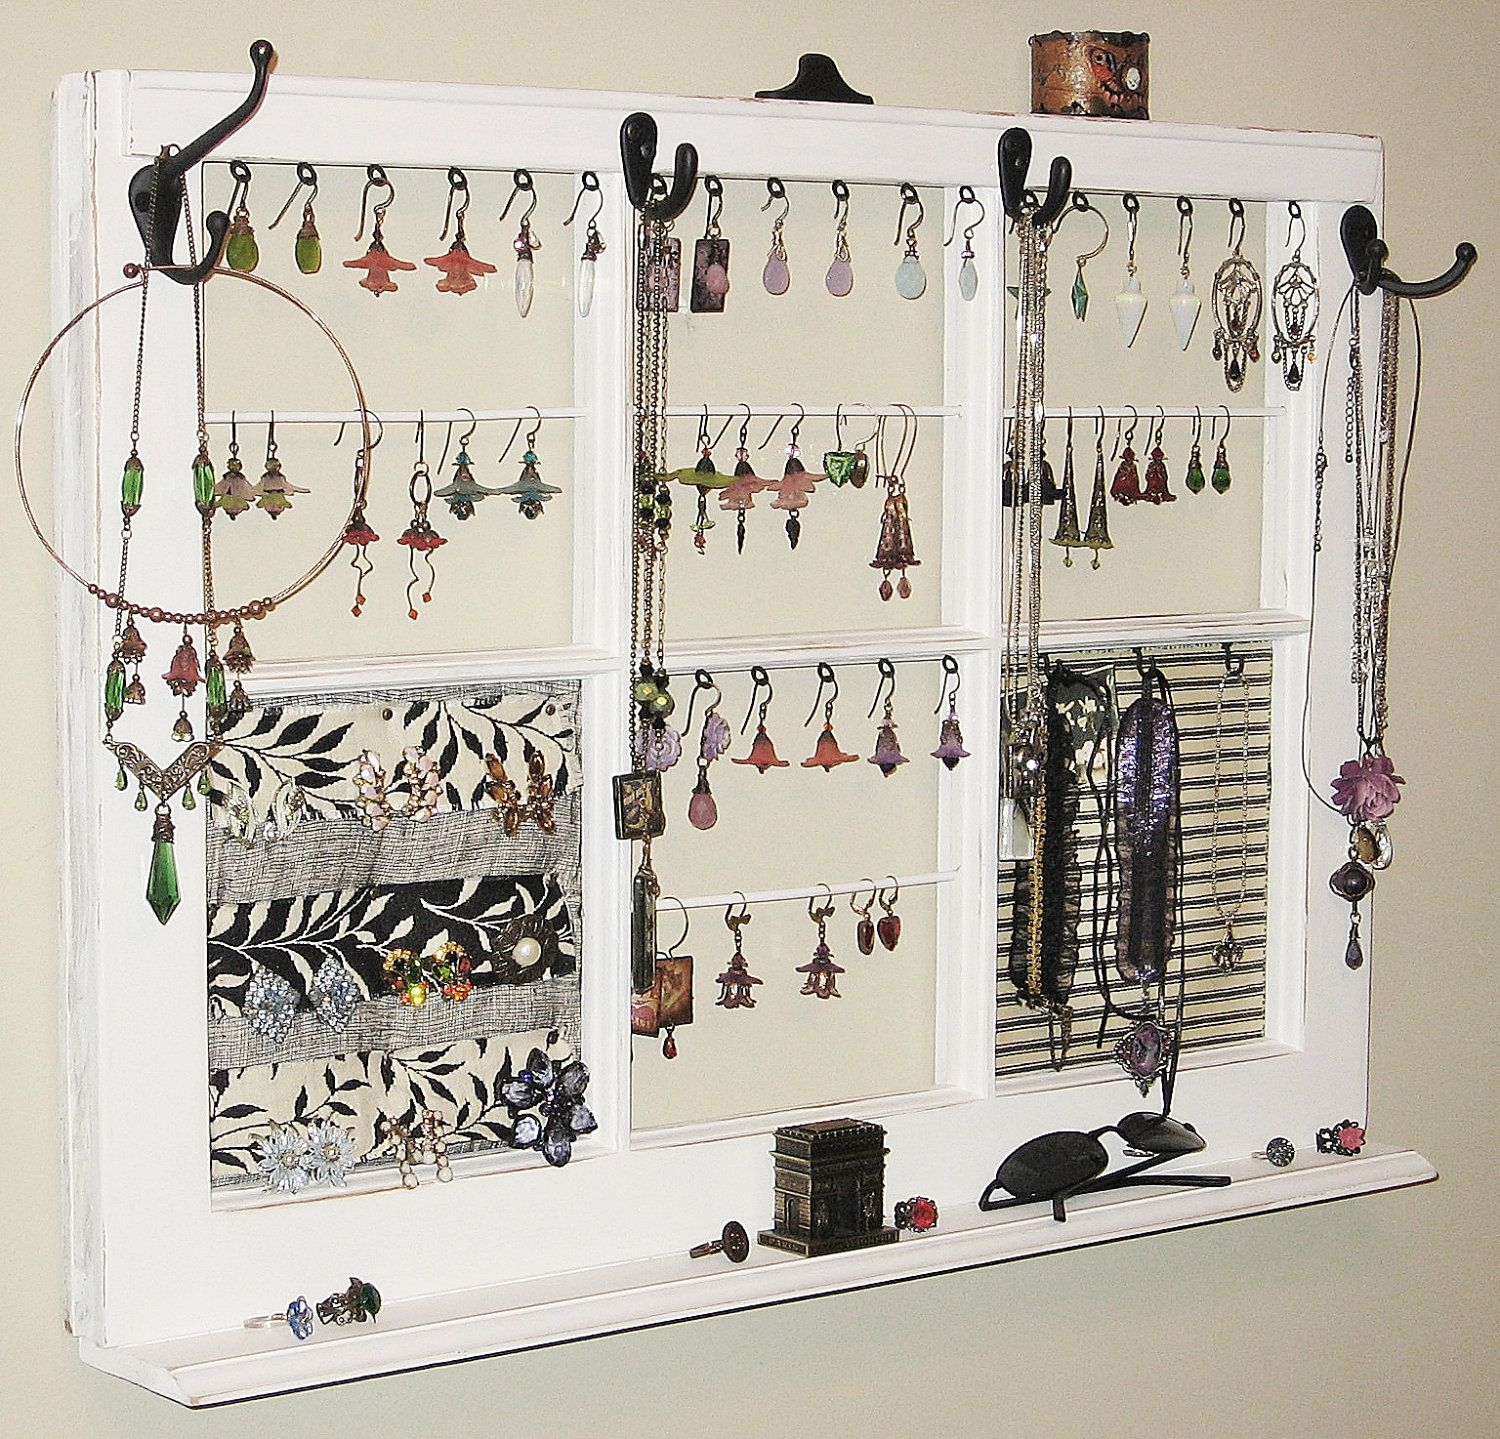 Upcycled Decor Window Frame Wall Hanging Jewelry Organizer Display